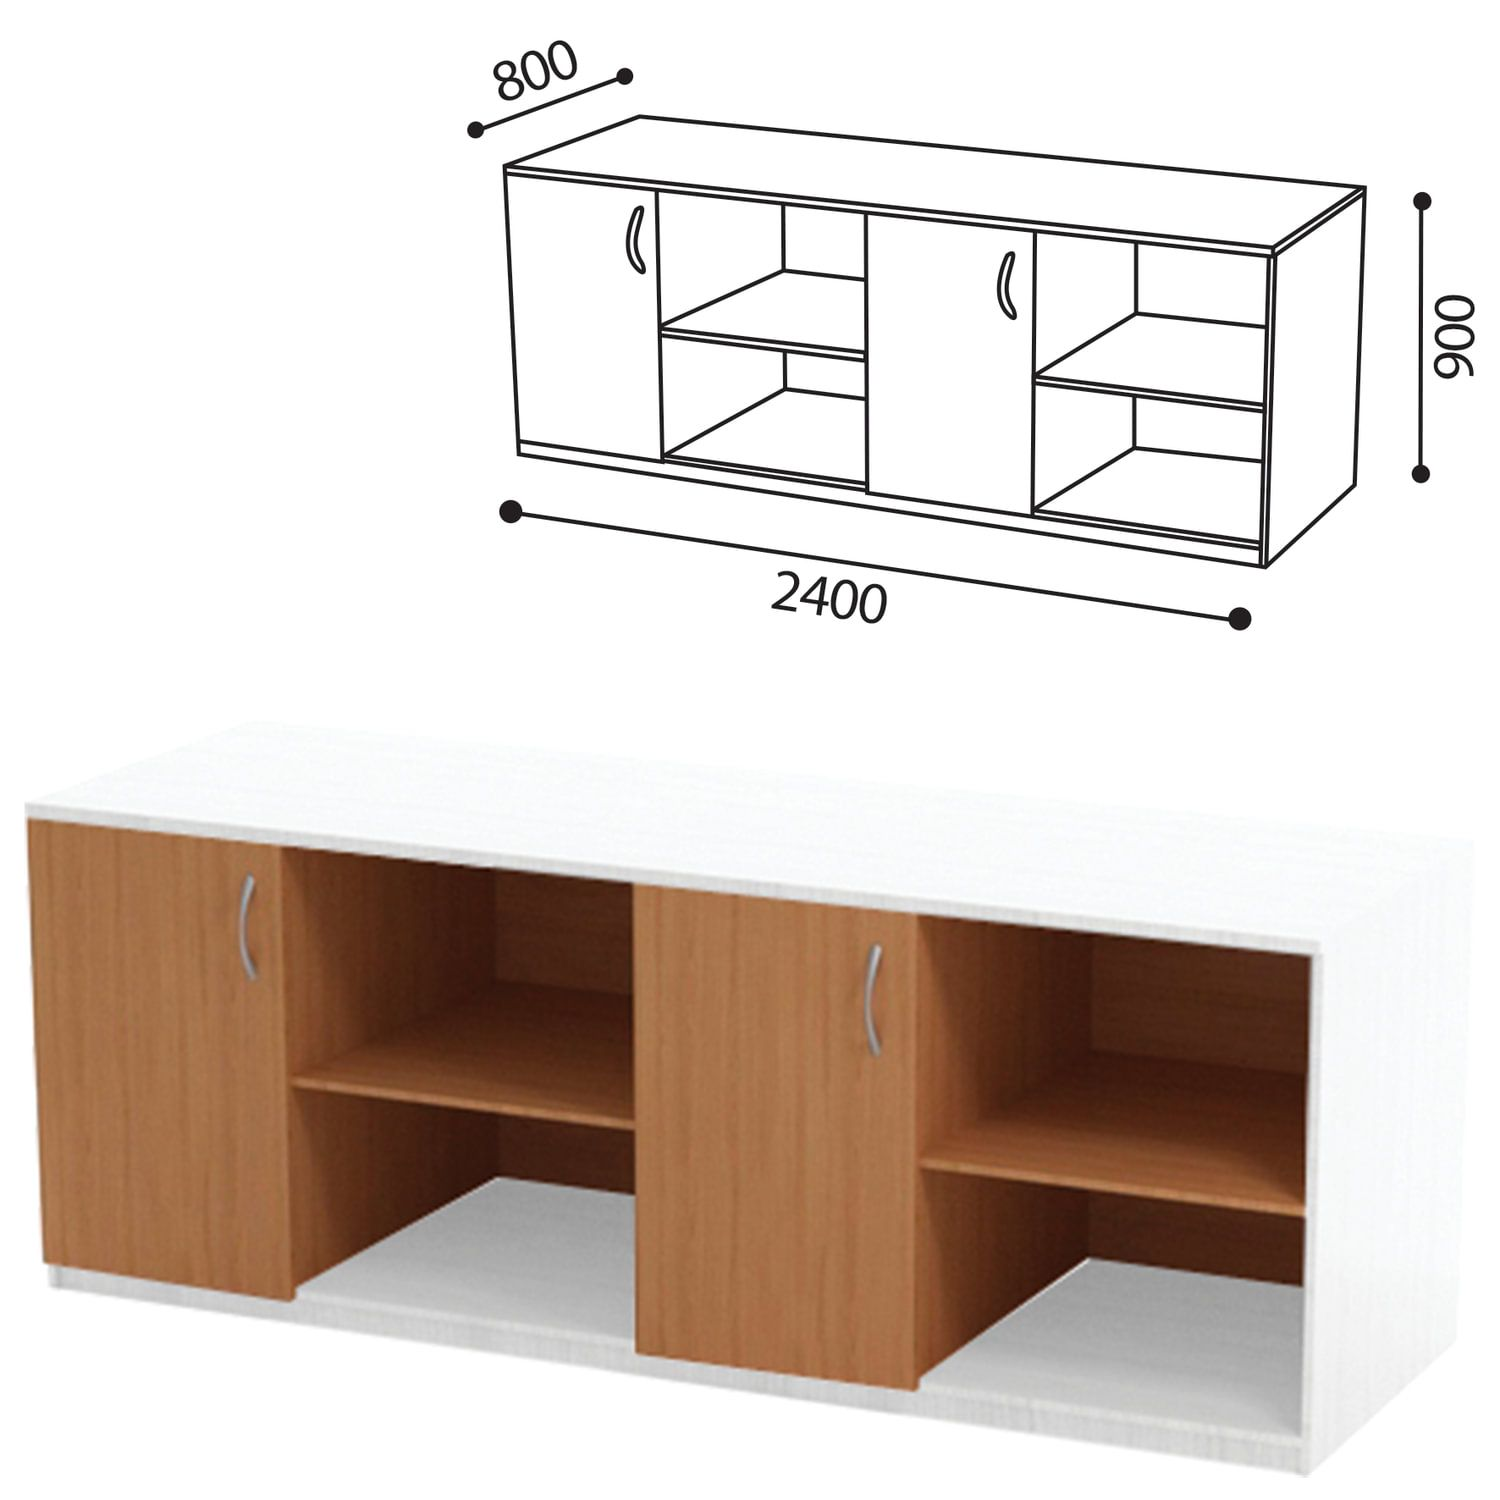 Table (PACKAGE 2) for physics cabinet, 2400 x800 x900 mm, LDSP beech/plastic